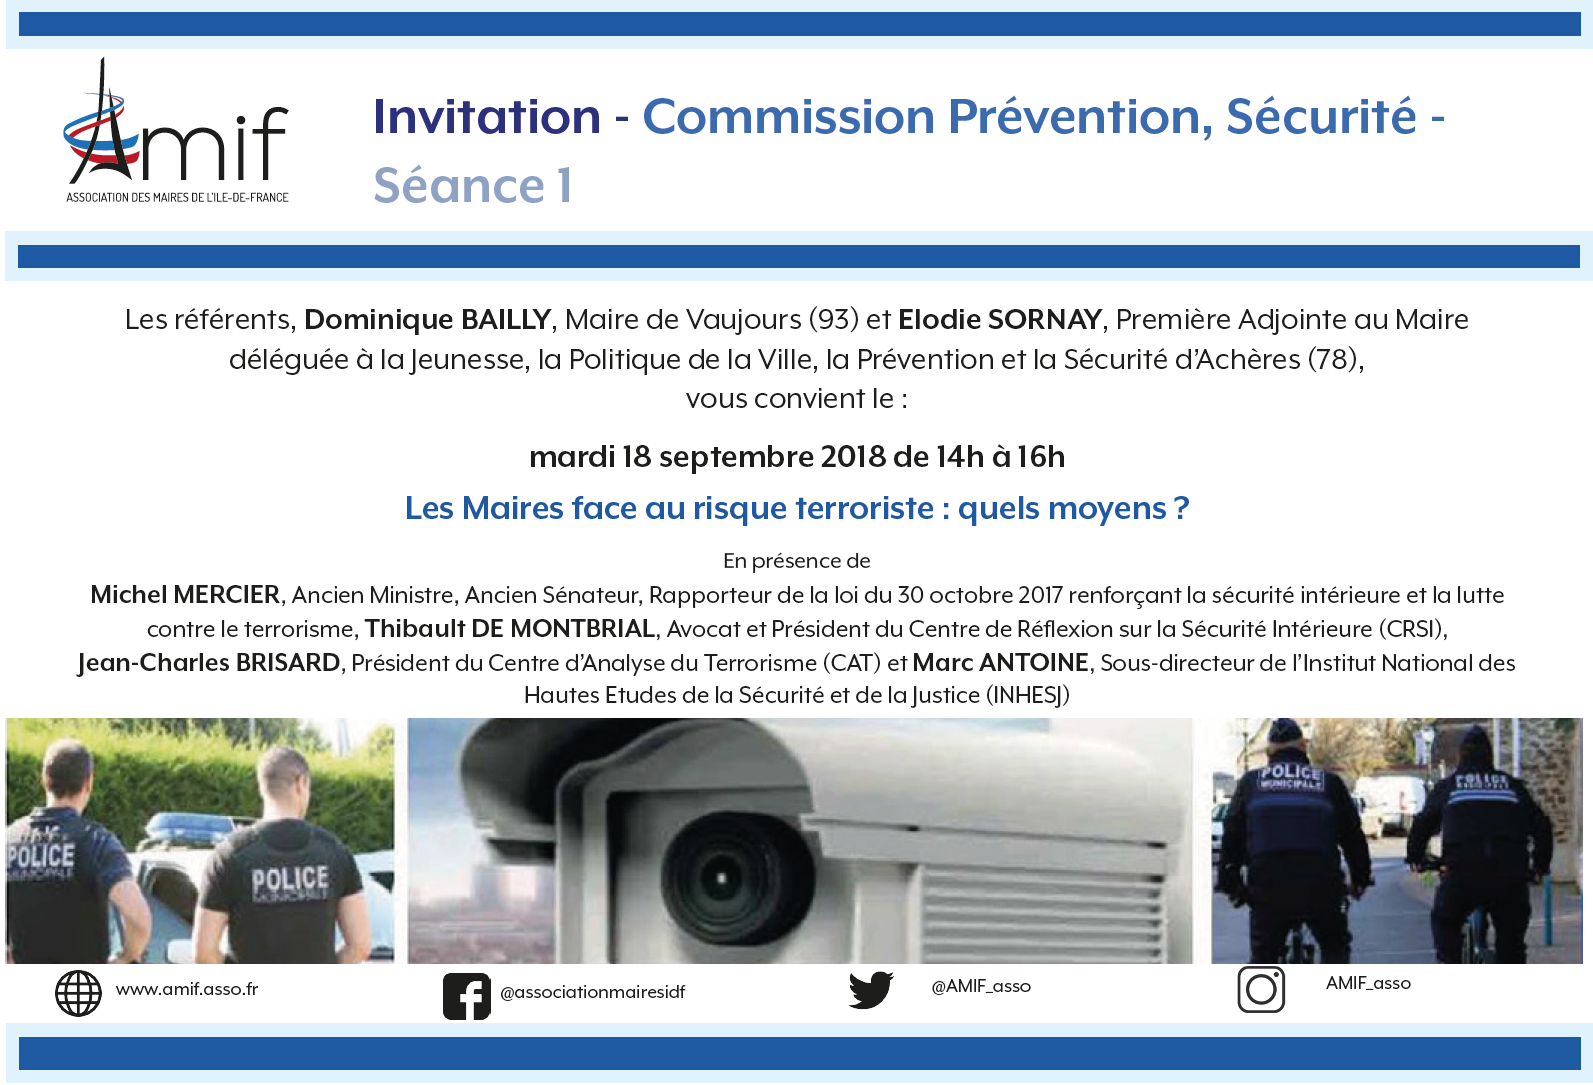 CommissionPreventionSecuriteSeance118septembre2018v3b